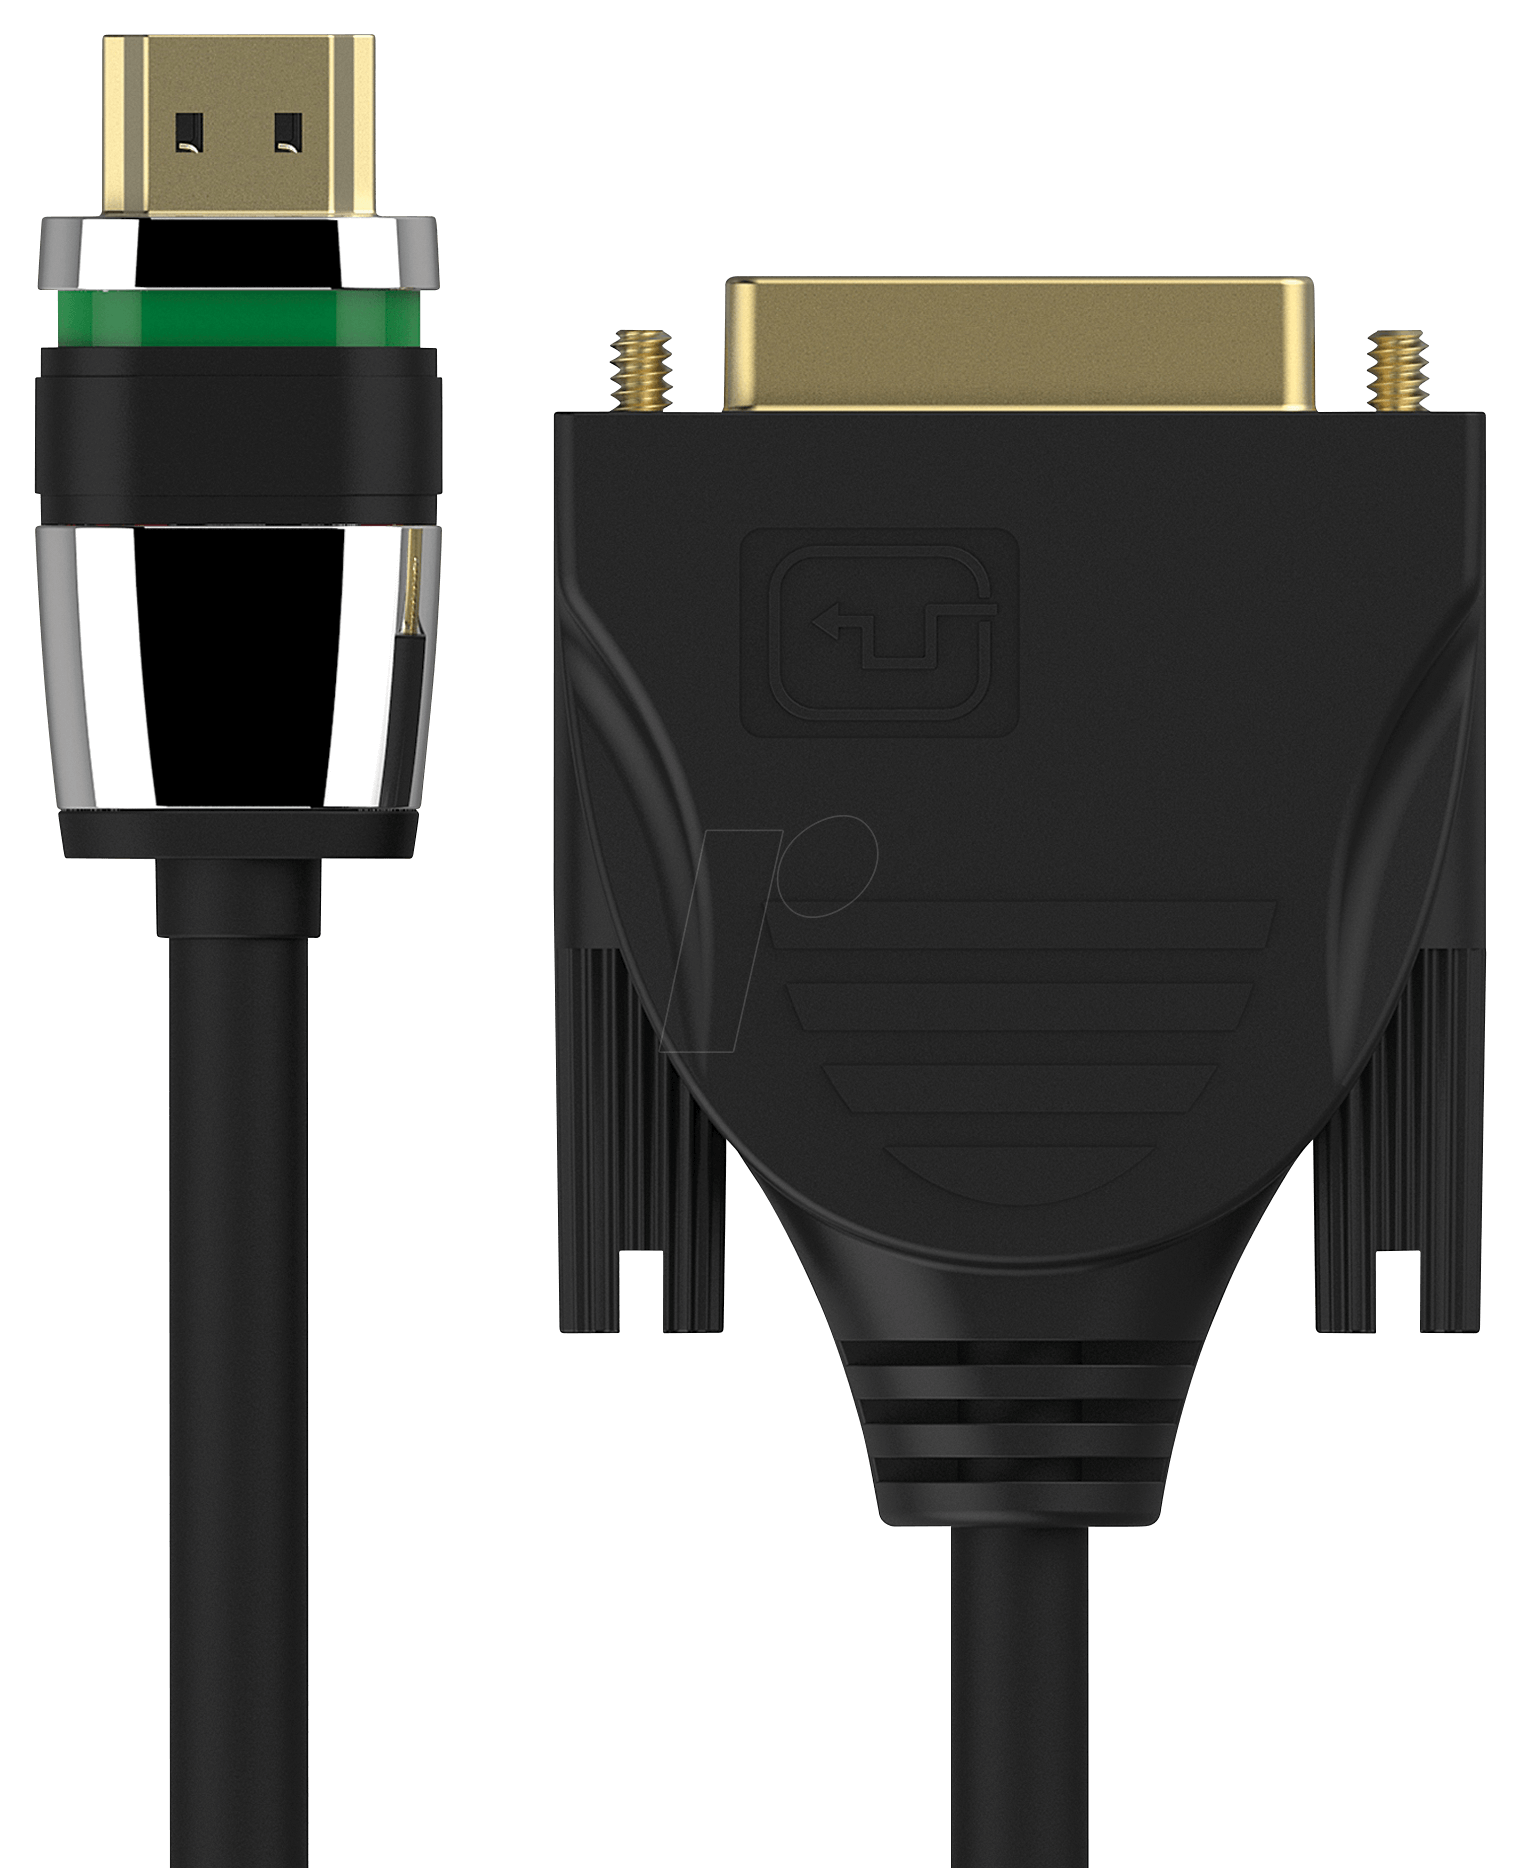 Pure Uls1300 020 Hdmi Dvi Kabel Ultimate Serie 2 M Bei Reichelt 2m To Tv Purelink